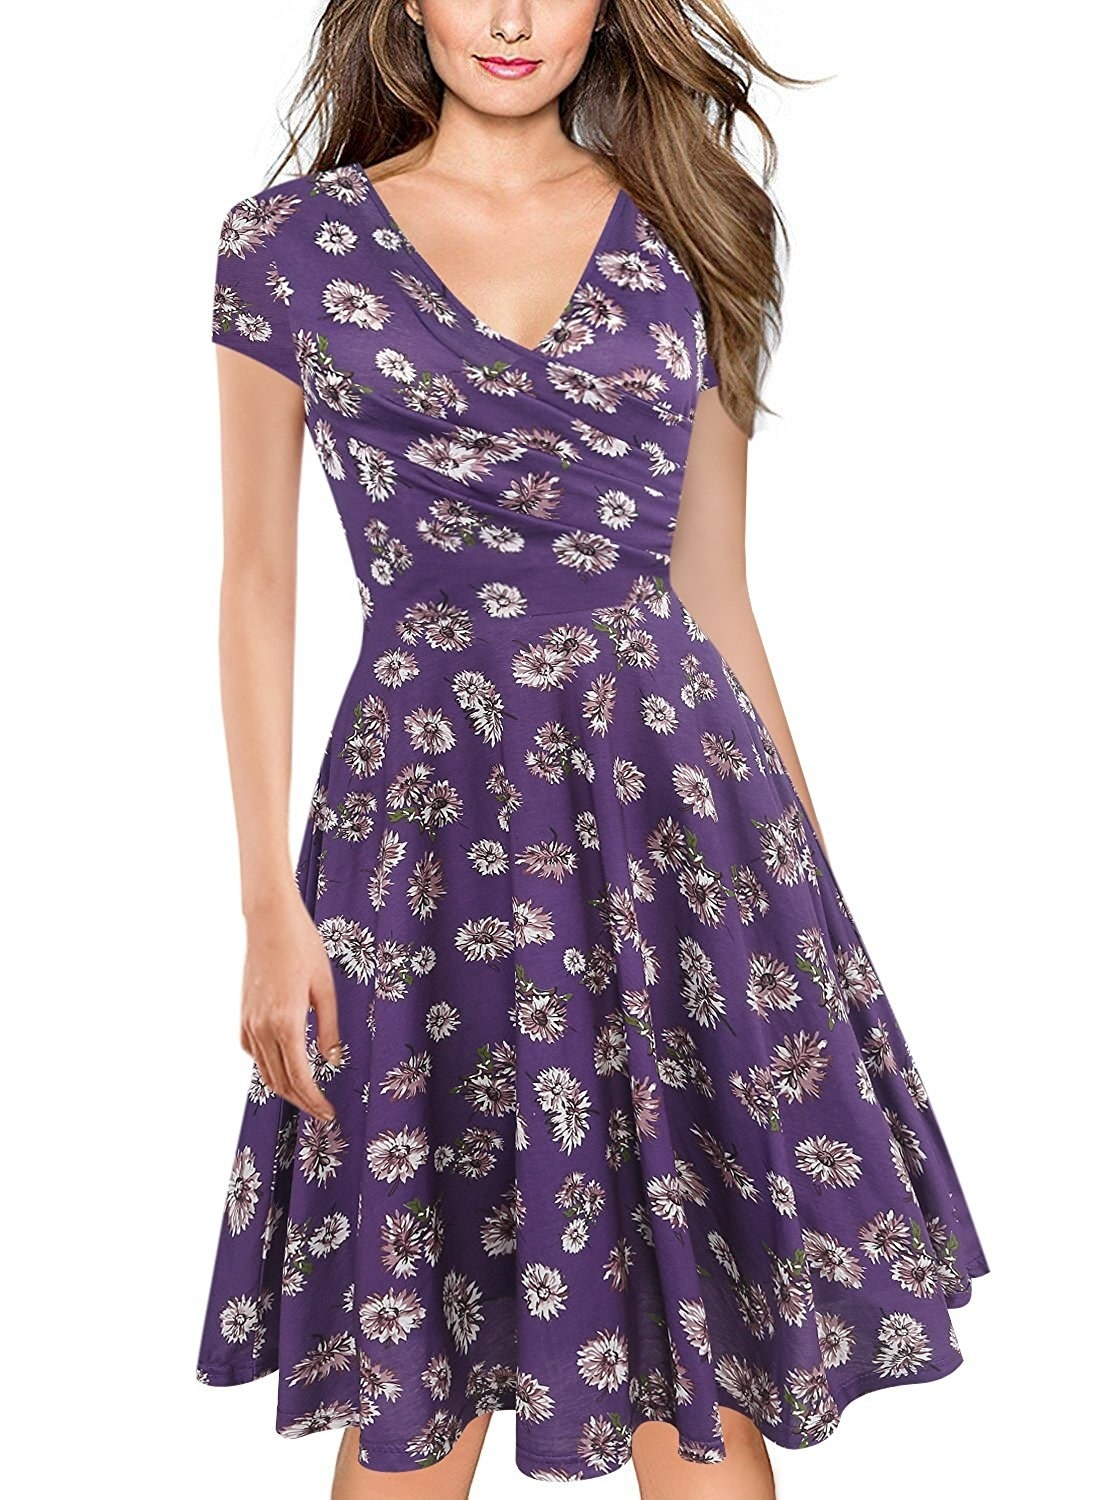 """Promising review: """"I LOVE THIS DRESS! The design is so pretty and it works well for any occasion. I bought this to wear to my brother's spring wedding and I was not disappointed. It fits exactly as described. It is made of soft and comfortable fabric — not itchy or irritating. I cannot say enough about how much I love this dress."""" —Amazon CustomerGet it from Amazon for $13.99 (available in sizes S-XXL and in 21 colors)."""